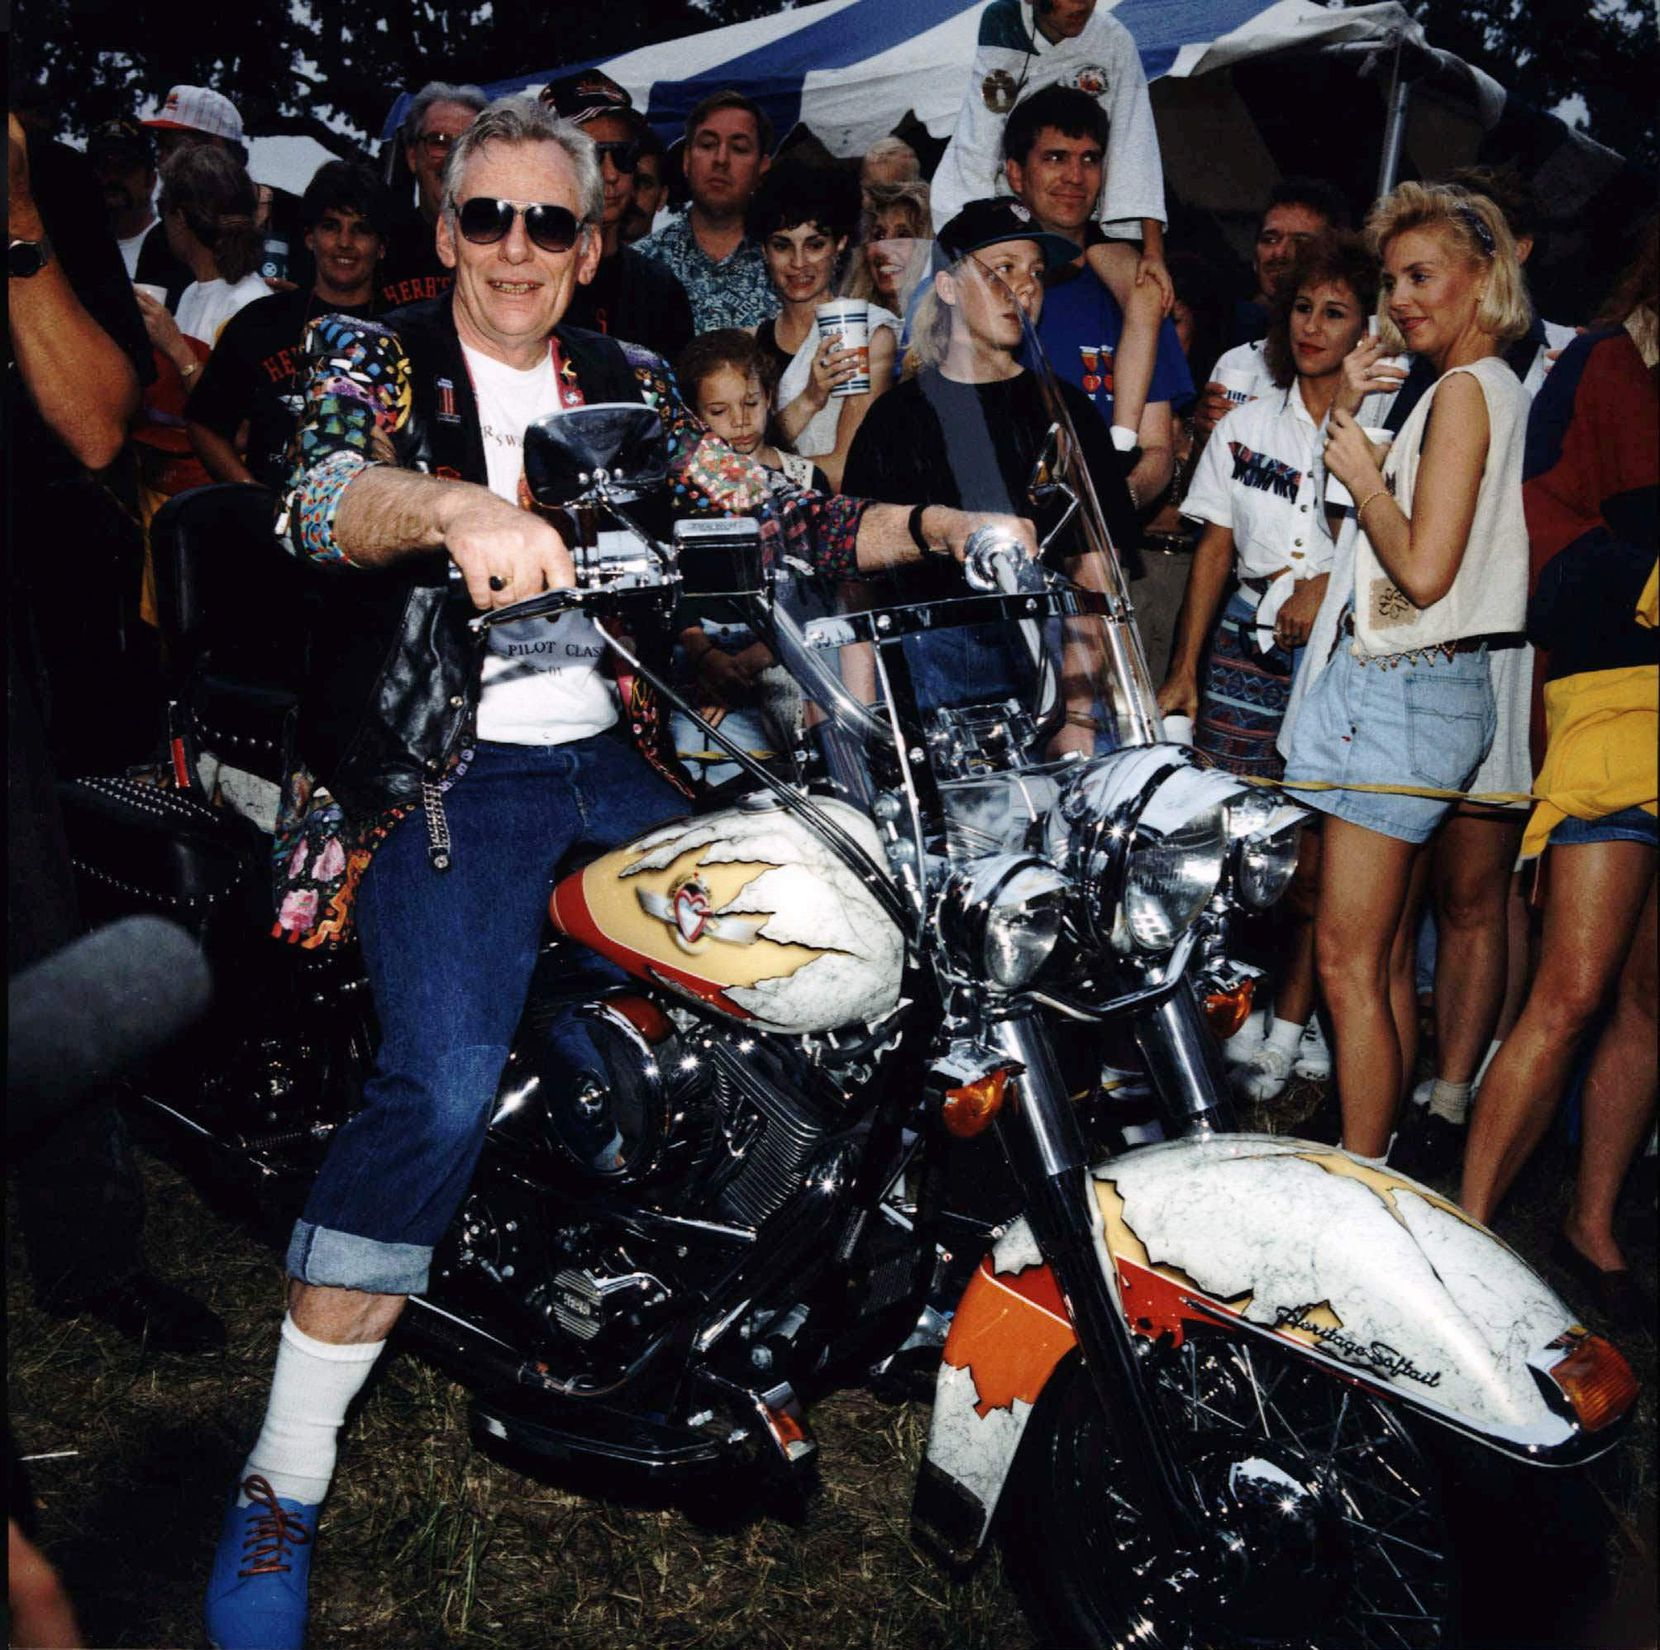 "Straddling a Harley-Davidson motorcycle given him by his pilots, Southwest Airlines chairman Herb Kelleher prepared to sing Elvis' ""Blue Suede Shoes"" at a 1994 company chili cook-off in Dallas."